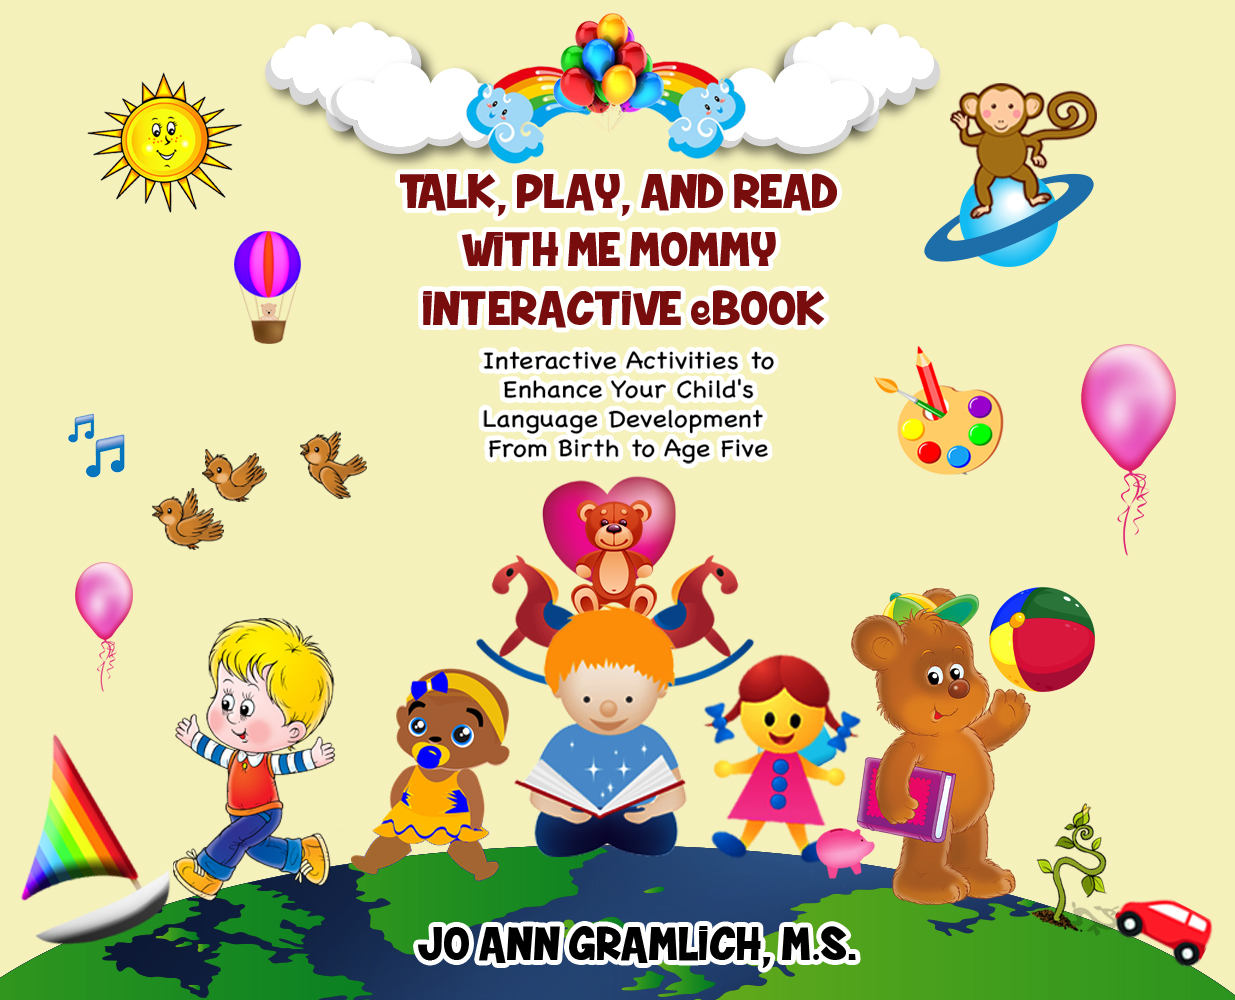 Jo ann's book on interactive activities for infants